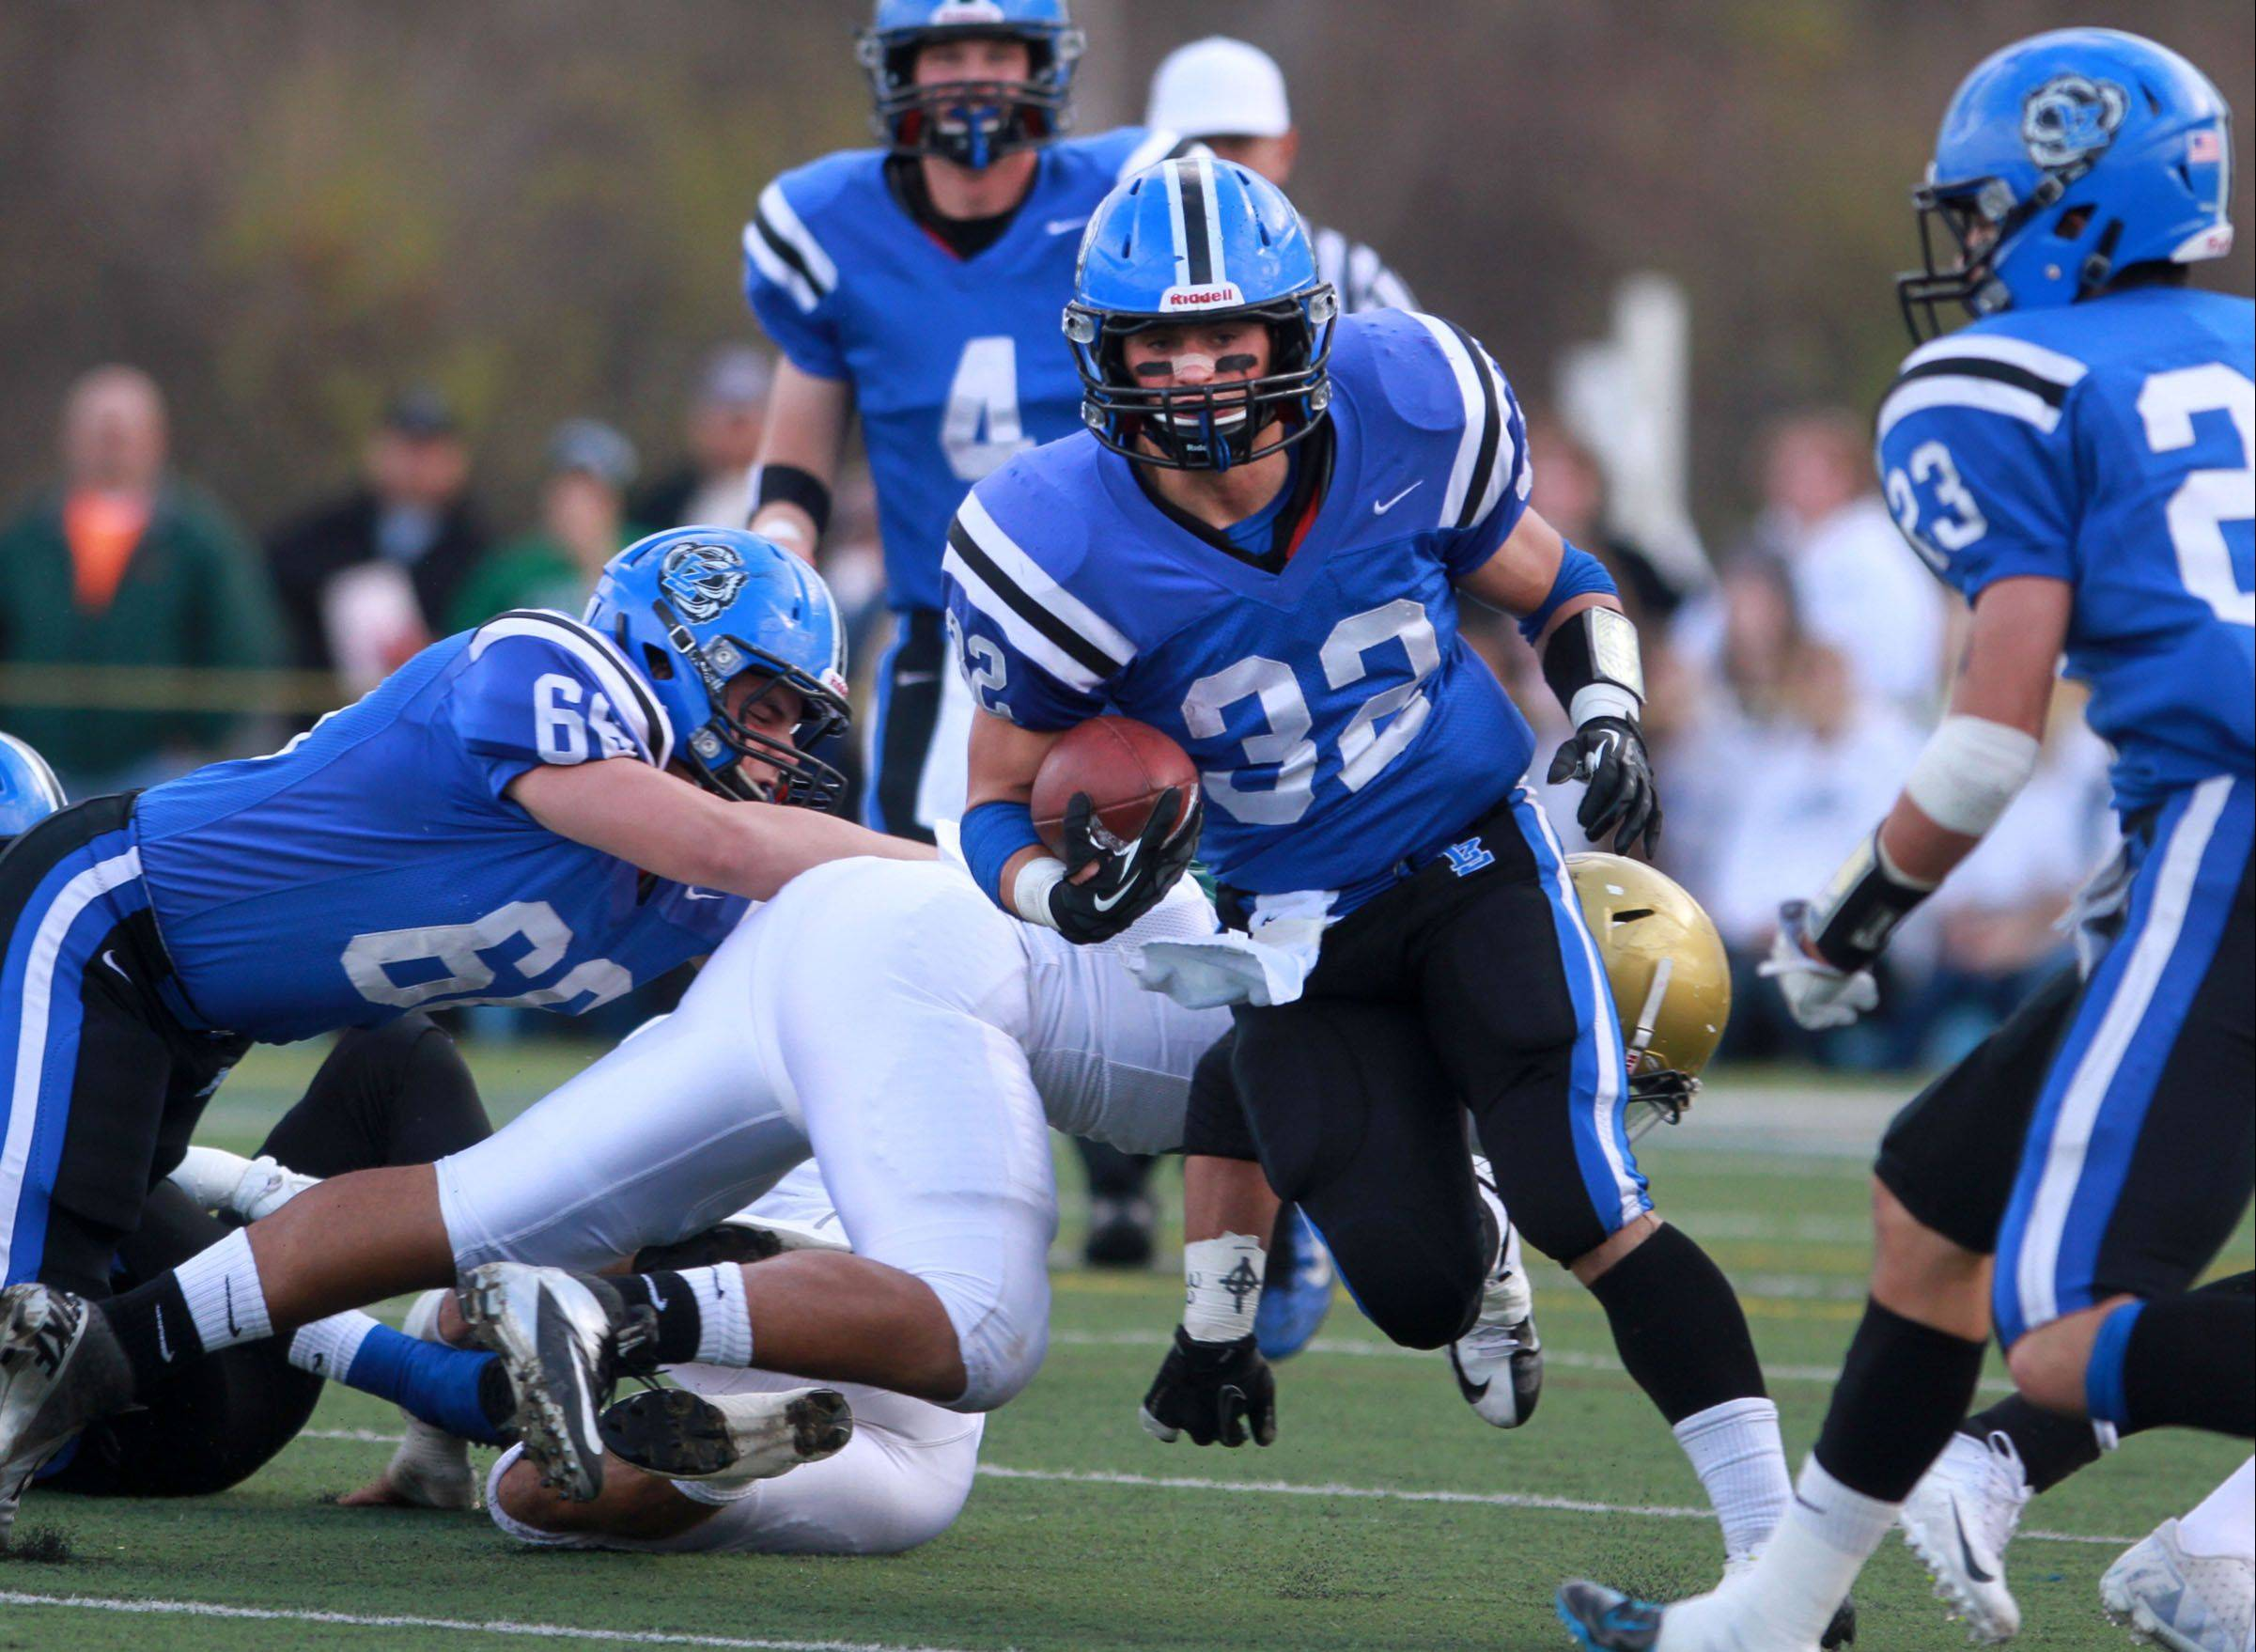 Lake Zurich running back Connor Schrader finds a hole against Rockford Boylan in last weekend�s Class 7A state quarterfinal game.